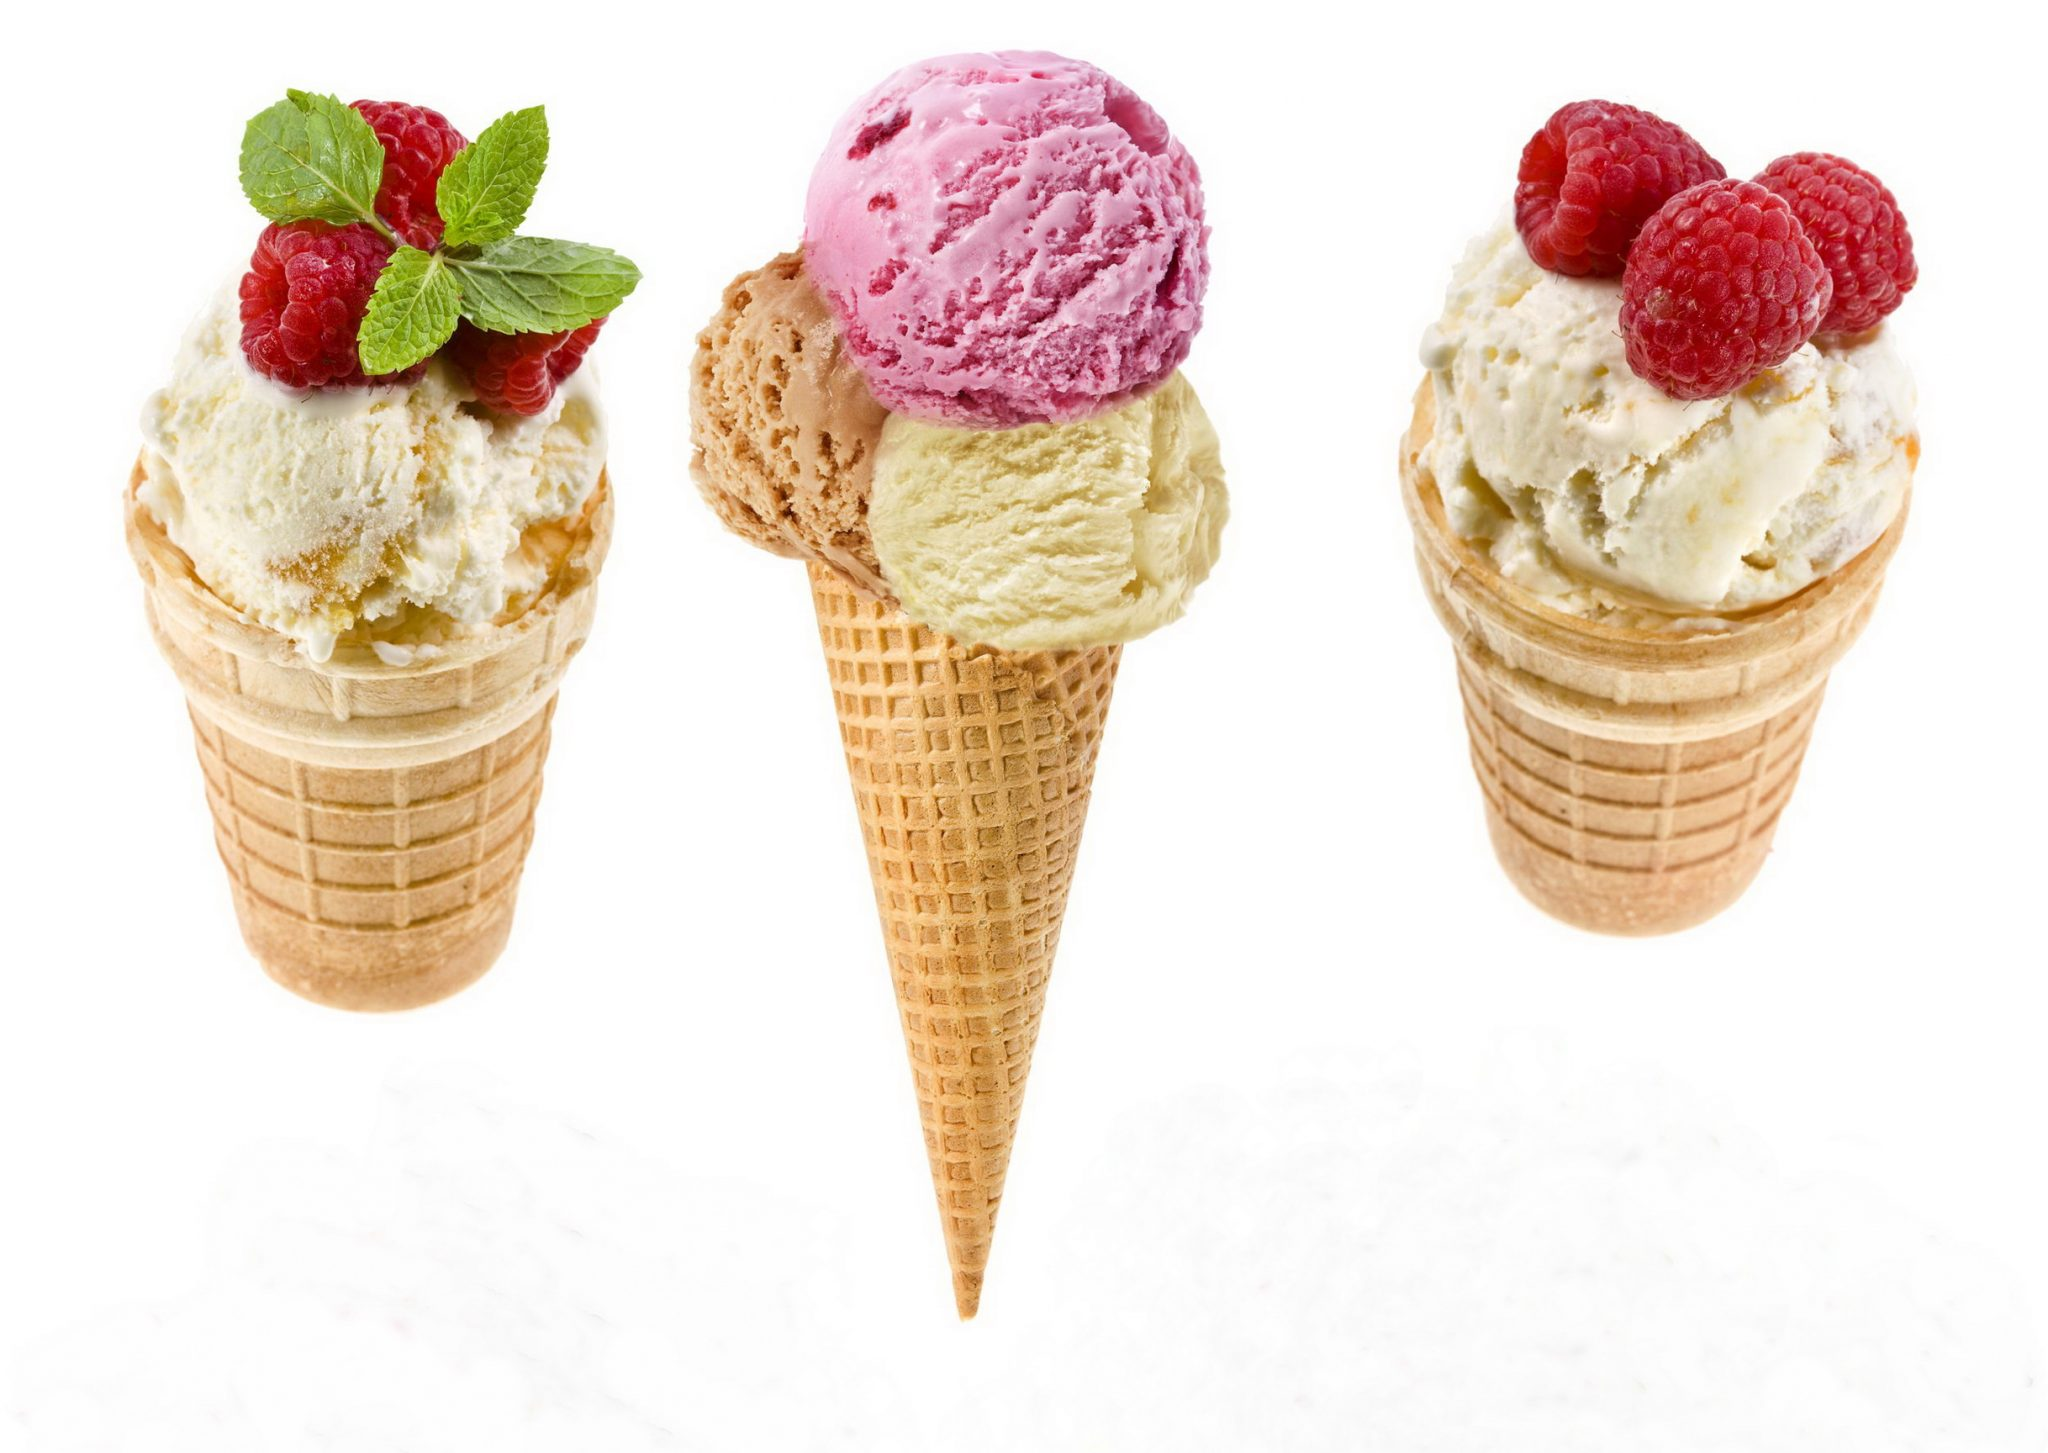 ice cream market in the us In 2016 the global market size was valued at $548 billion california is the  leading ice cream-producing state in the us and produced.